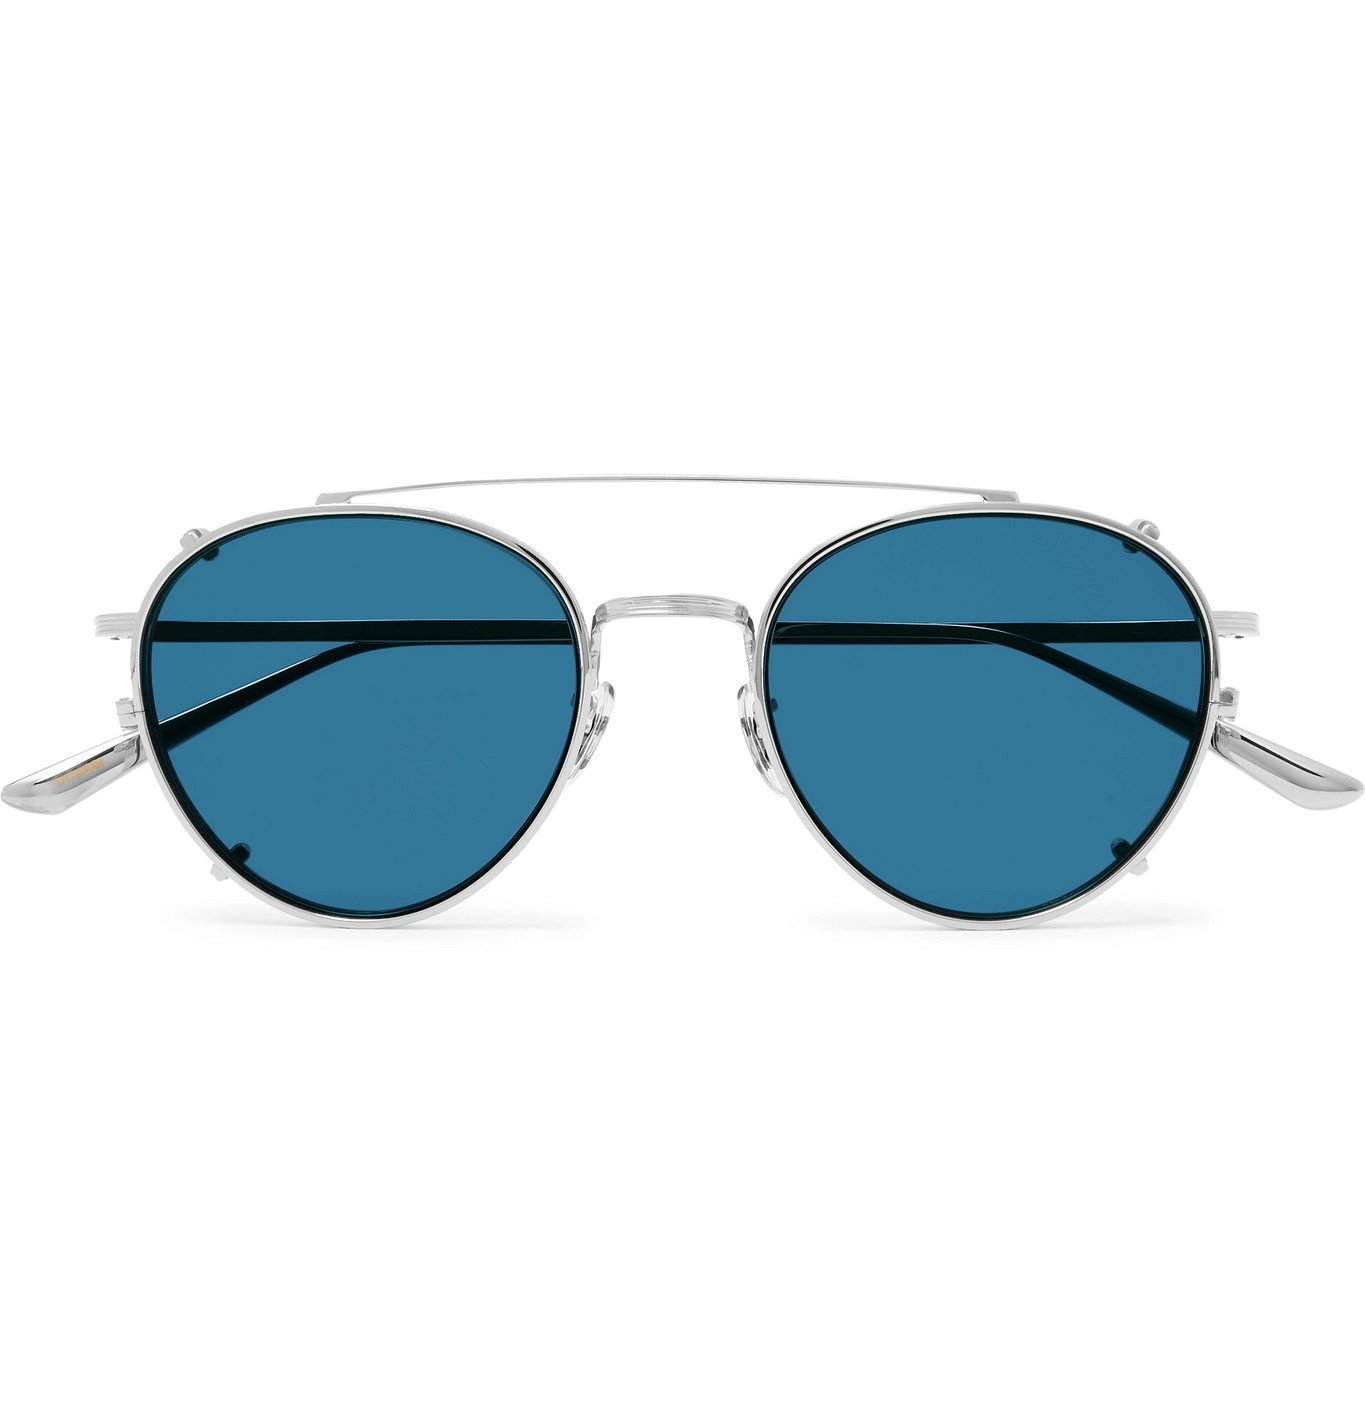 Photo: The Row - Oliver Peoples Brownstone 2 Round-Frame Silver-Tone Titanium Sunglasses - Silver